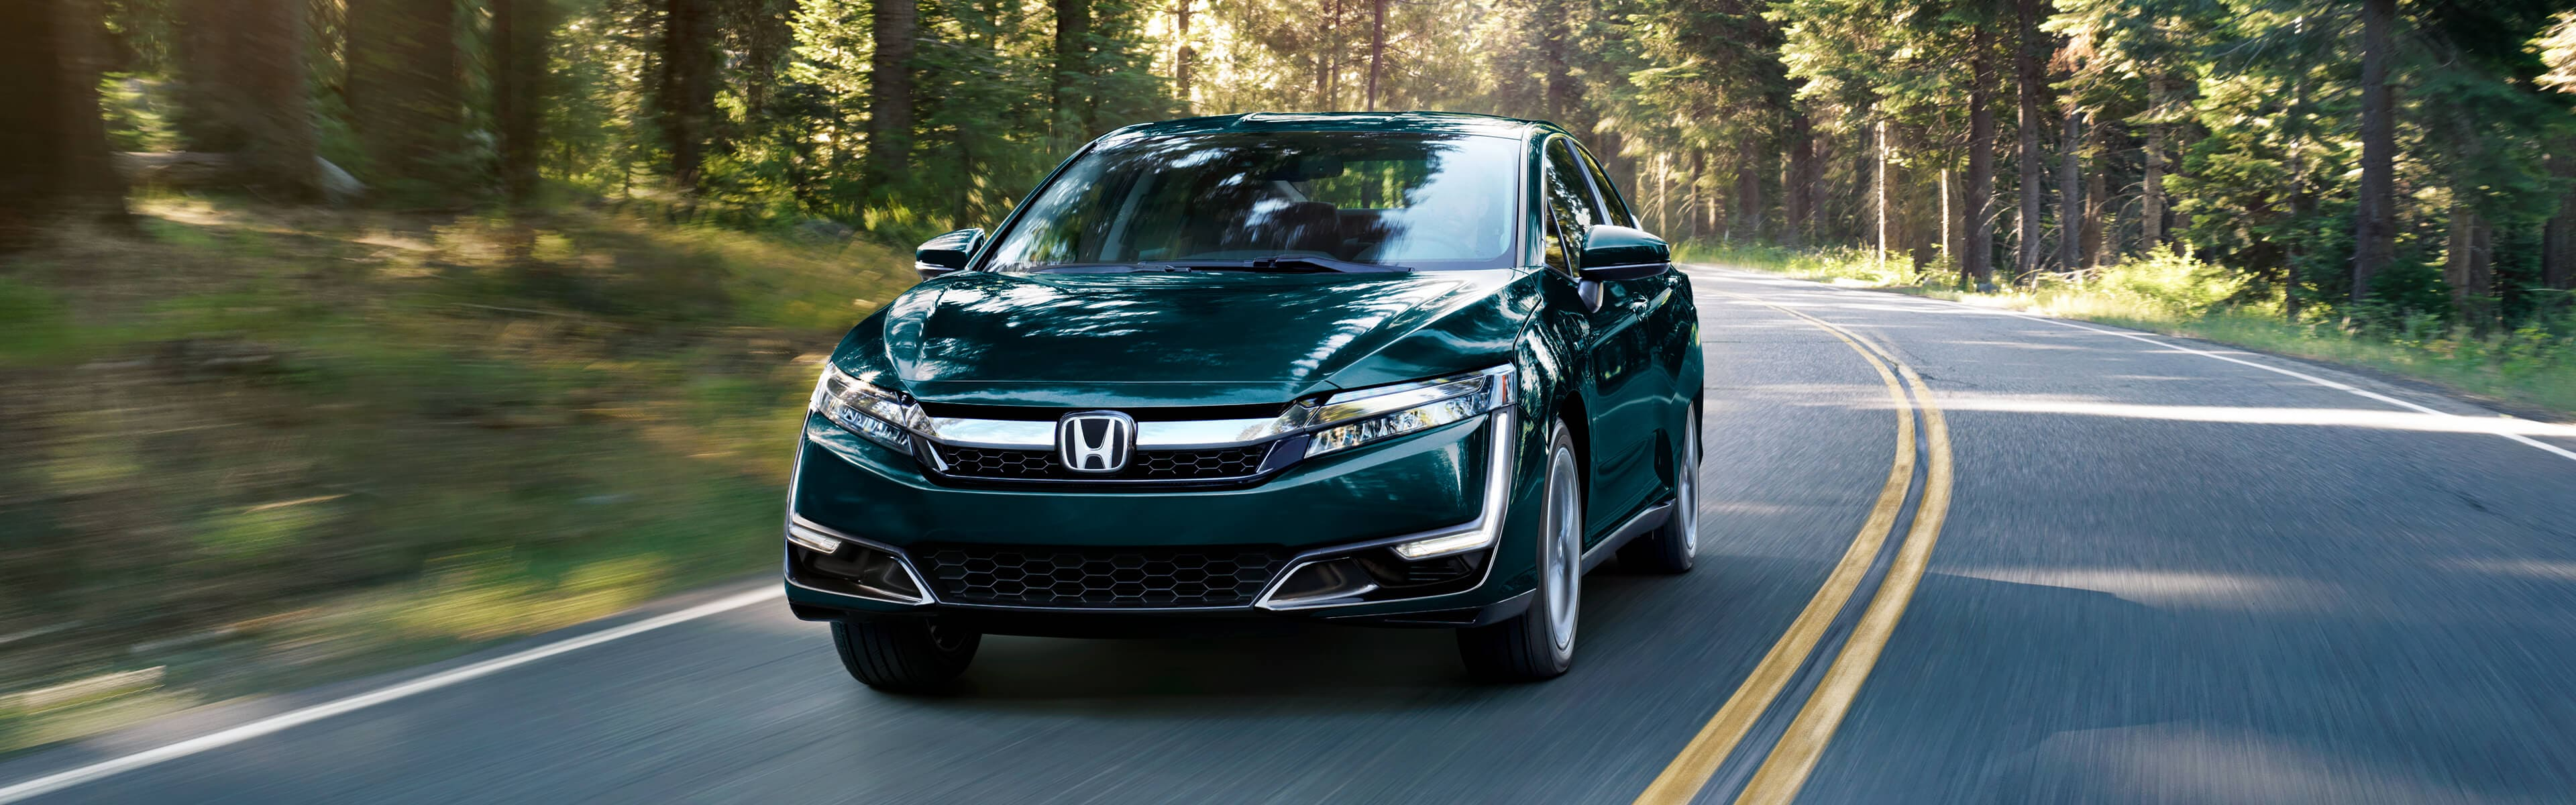 2018 Honda Clarity Driving Through Forest ...